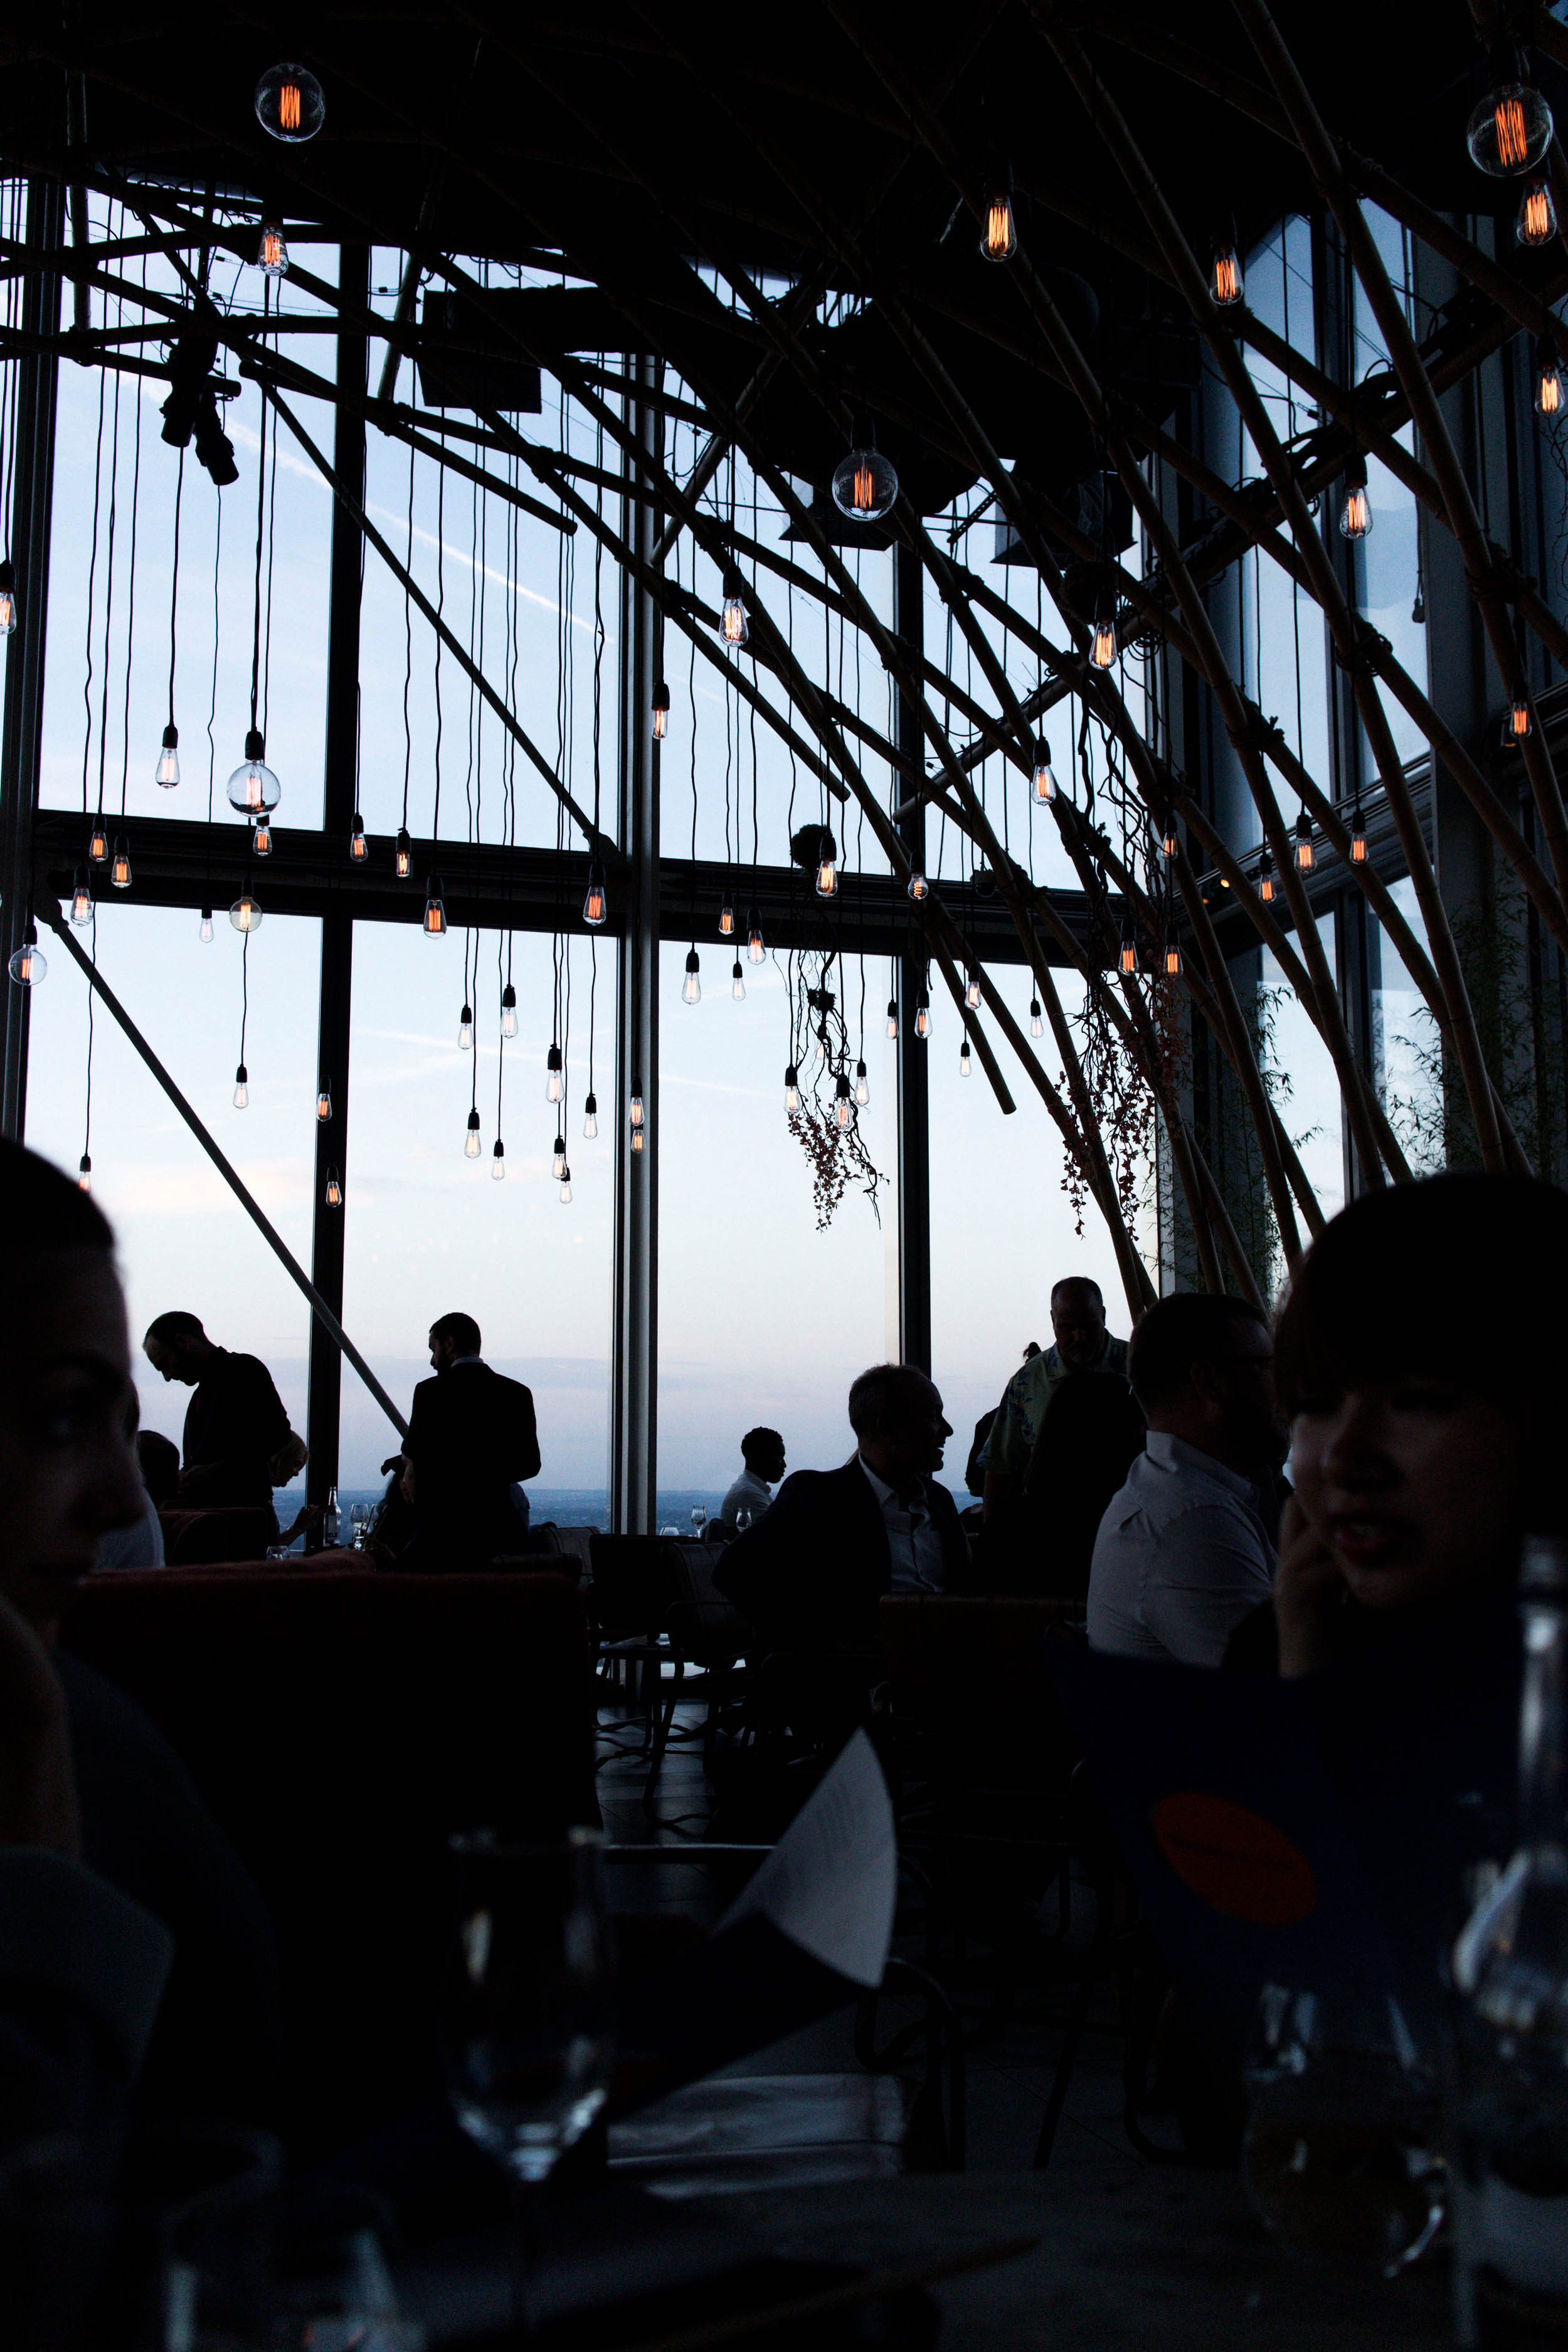 IHEARTALICE – Fashion & Travel Blog by Alice M. Huynh: London Travel Diary – Sushi Samba